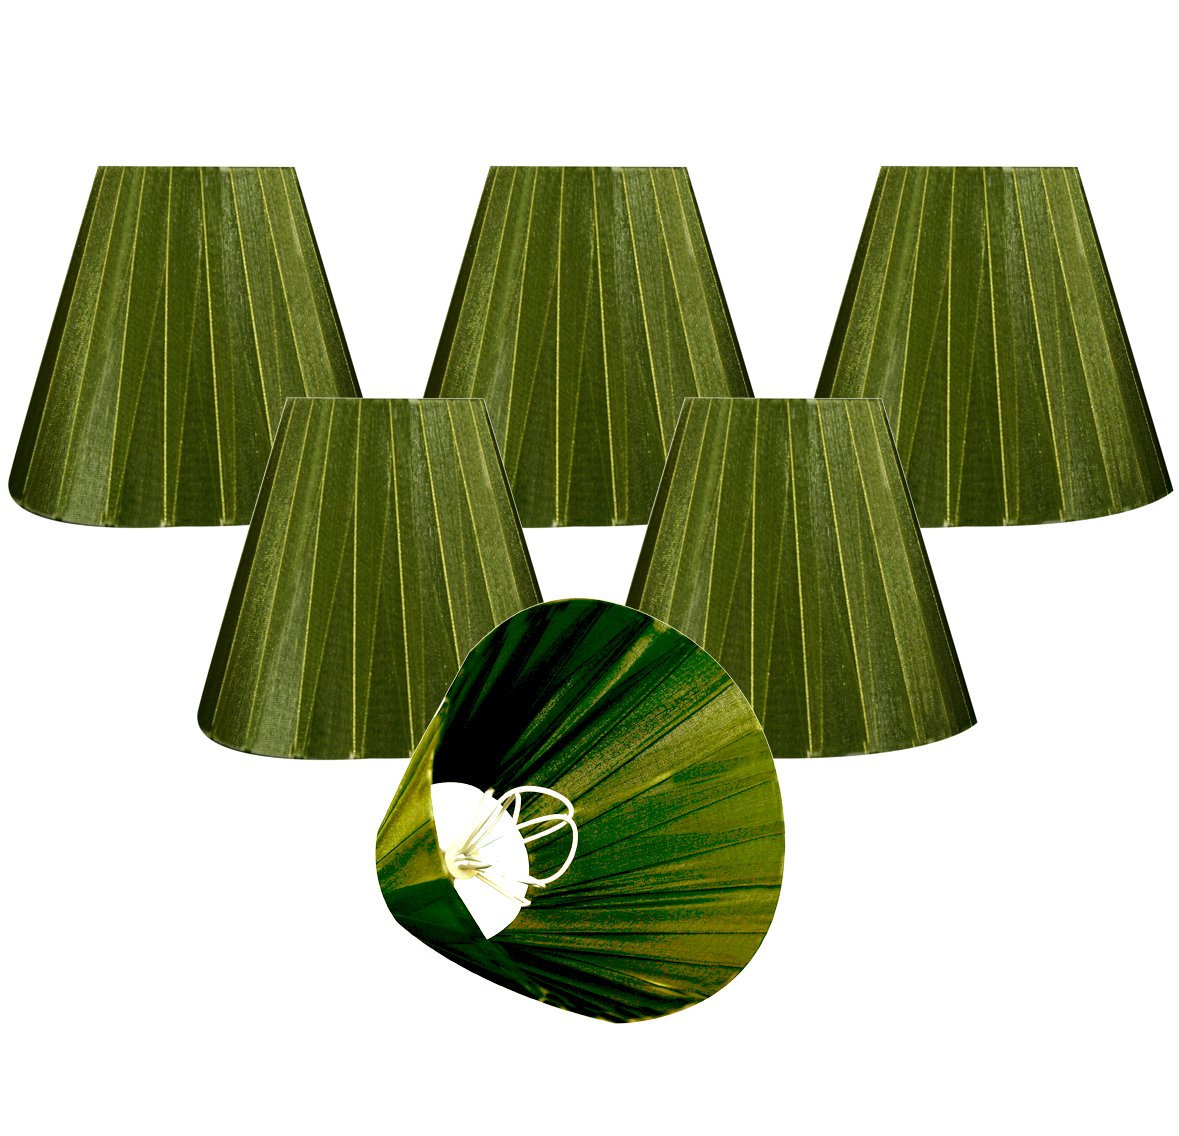 Royal Designs CS-1015-6GRN-6 Clip On Organza Empire Chandelier Lamp Shade, 3'' x 6'' x 4.5'', Emerald Green, Set of 6